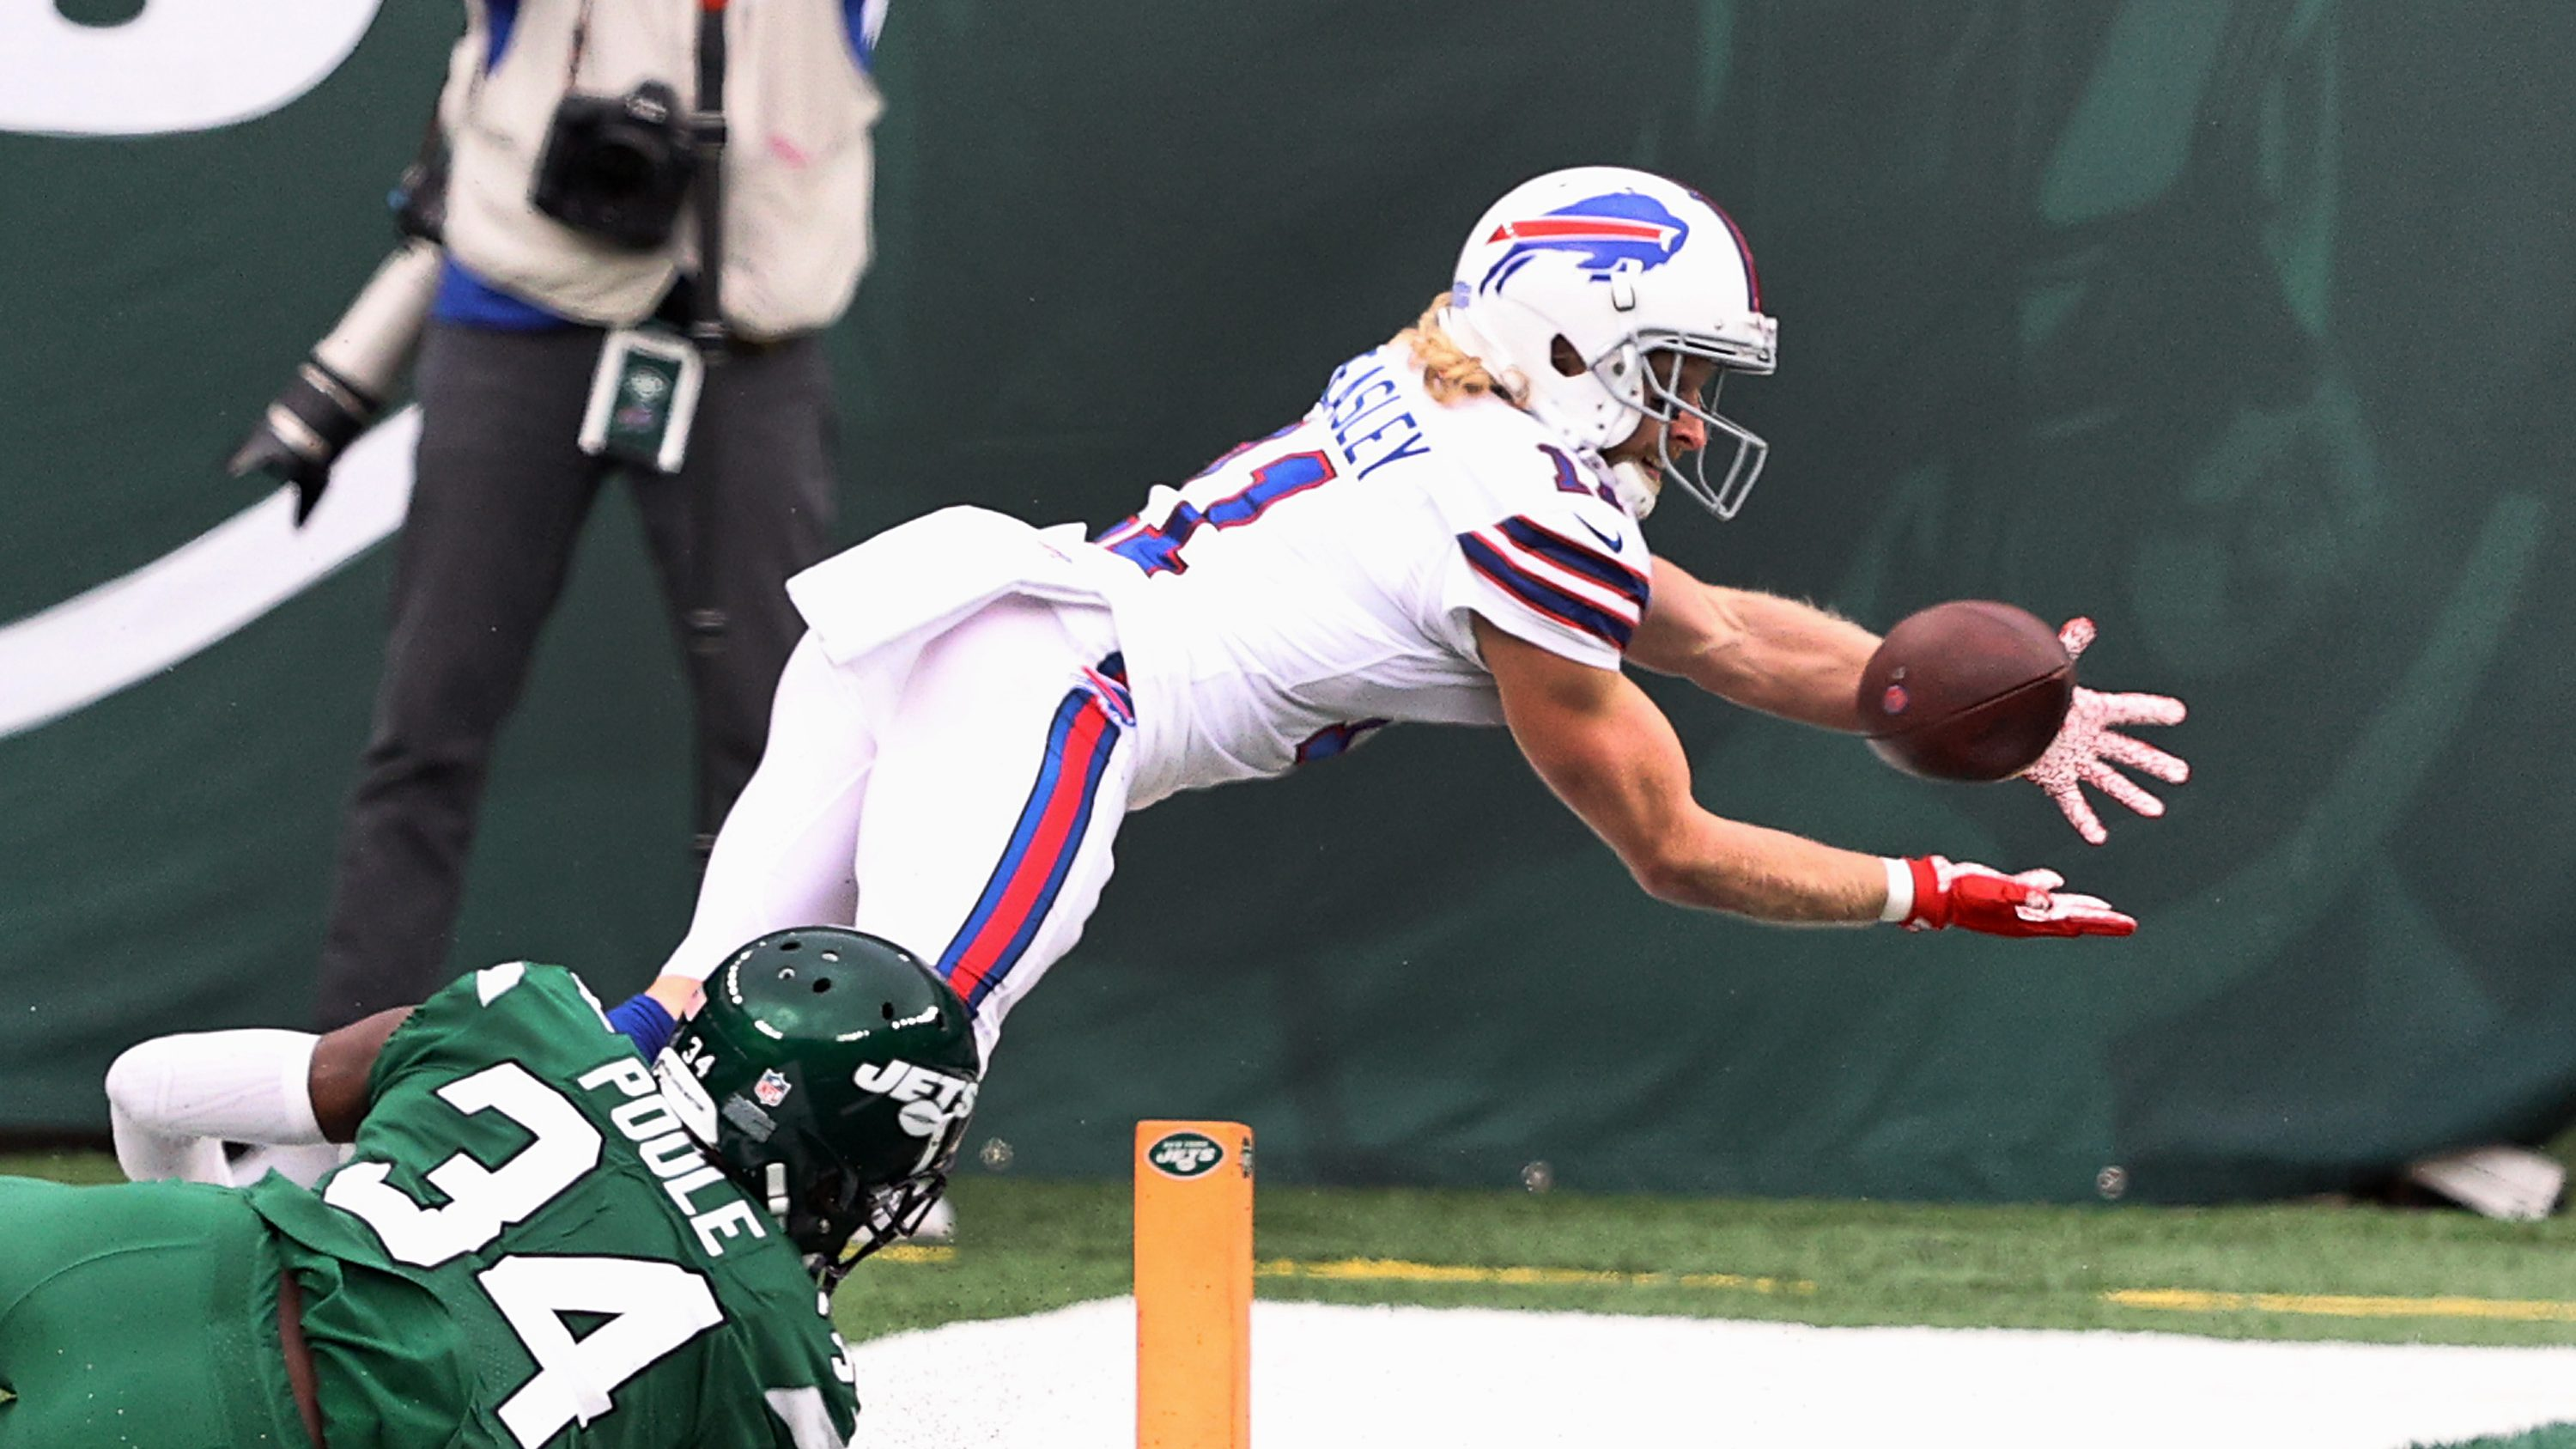 Bills End 2-Game Skid With 18-10 Victory Over Winless Jets